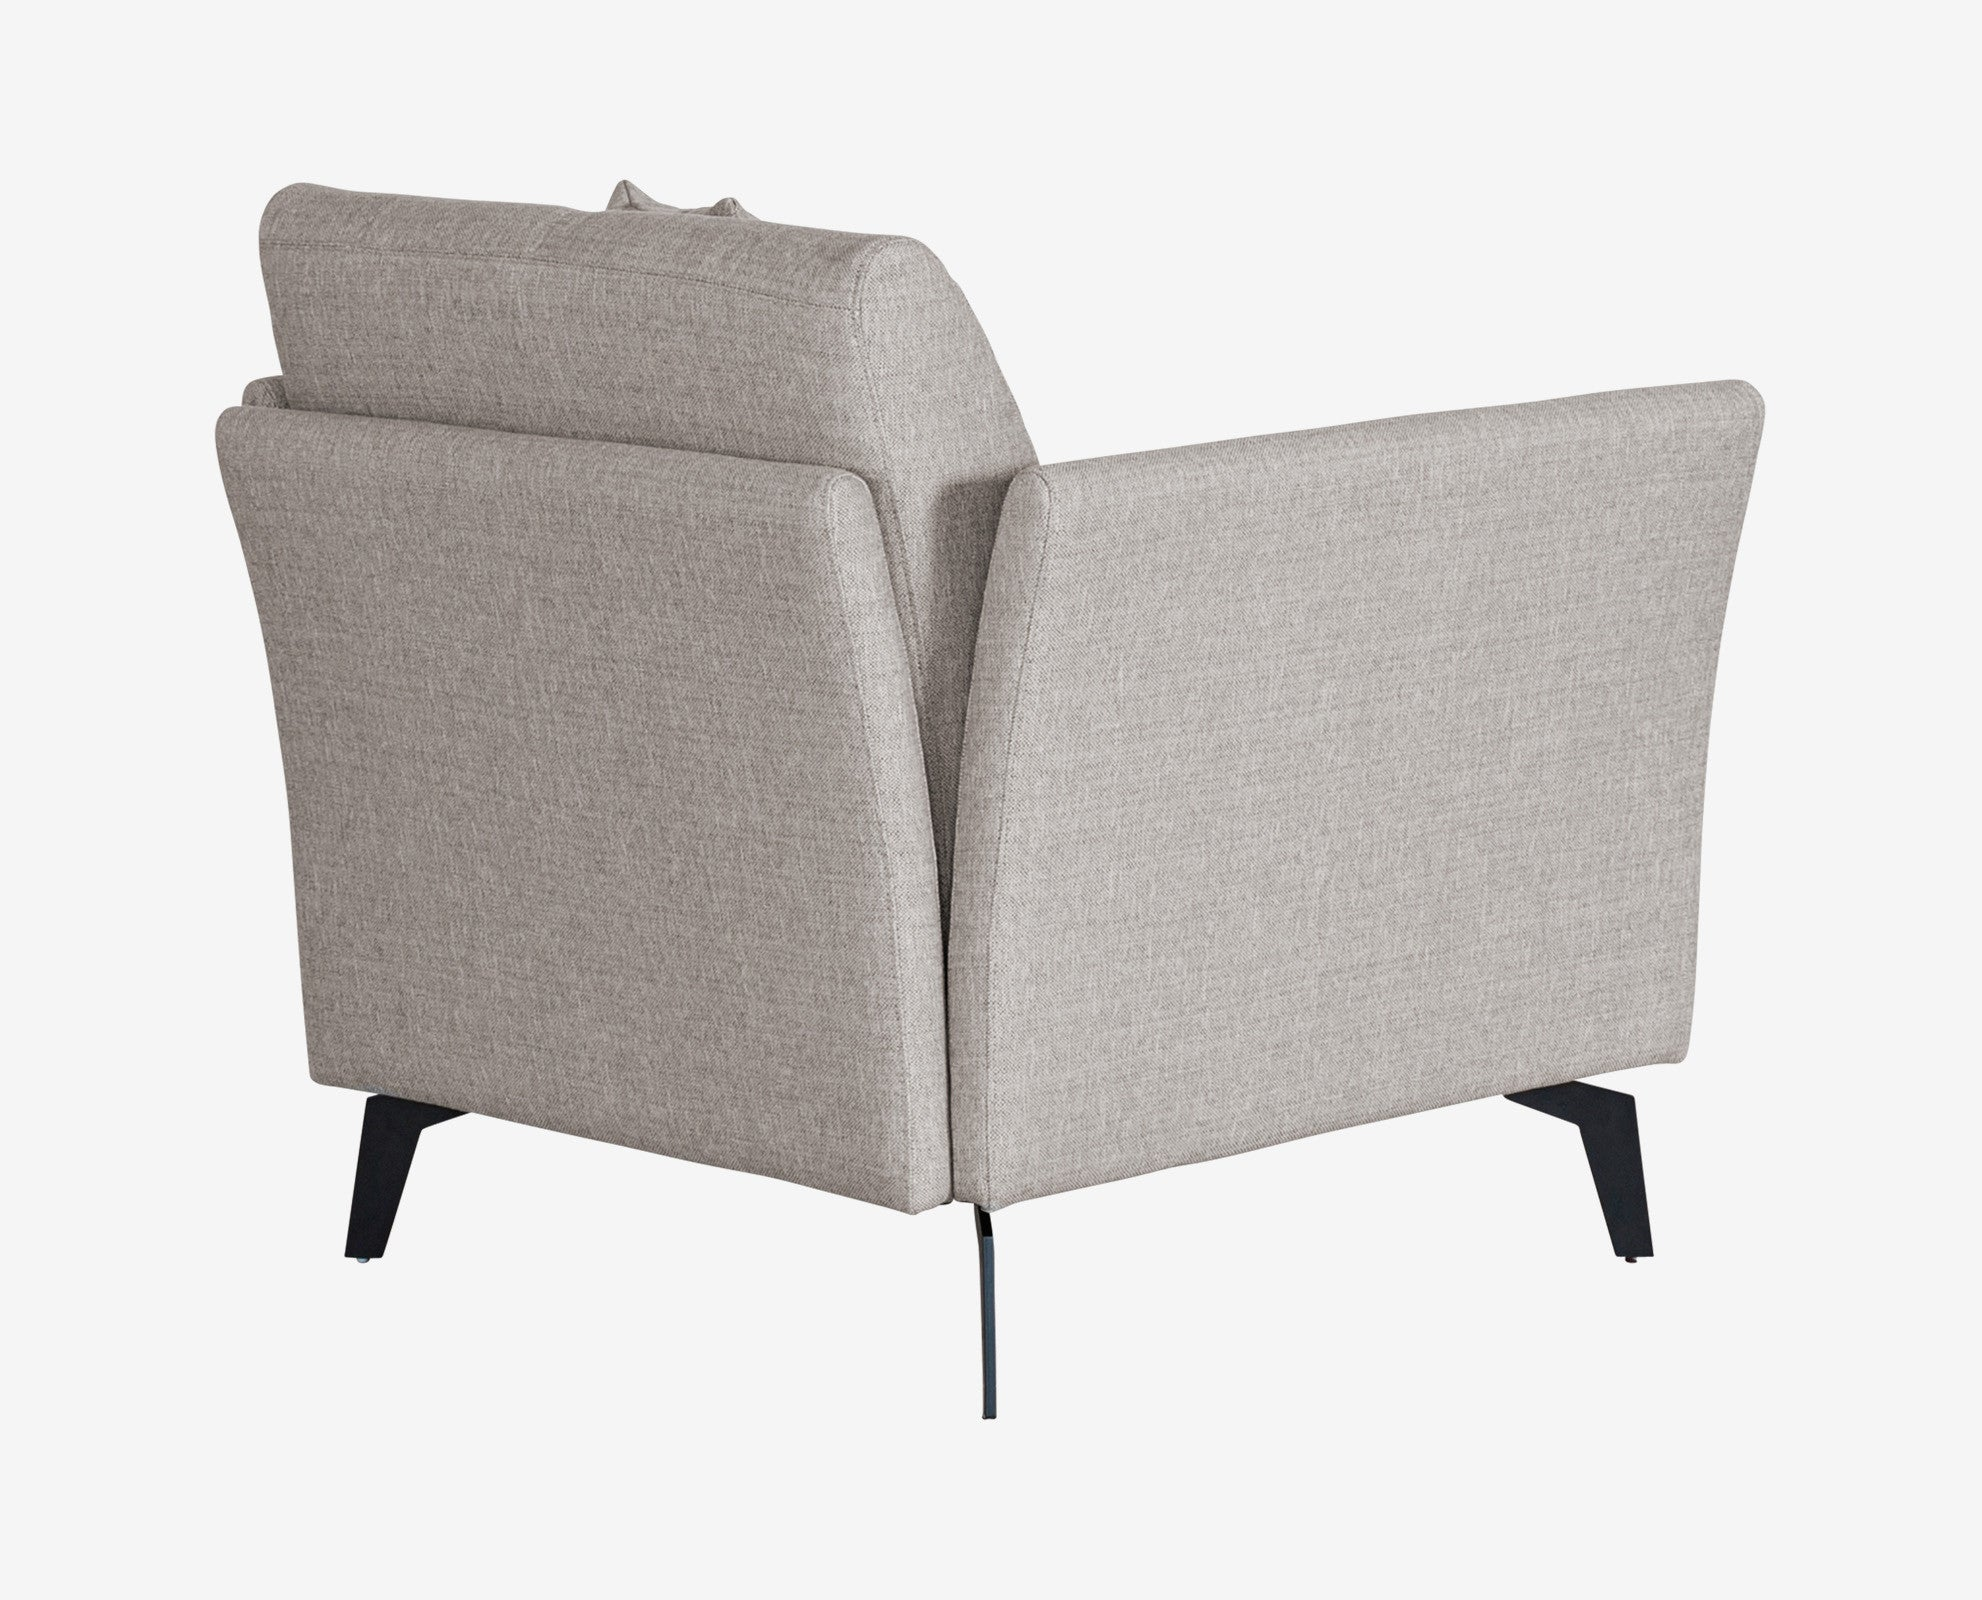 Renata Chair – DaniaFurniture